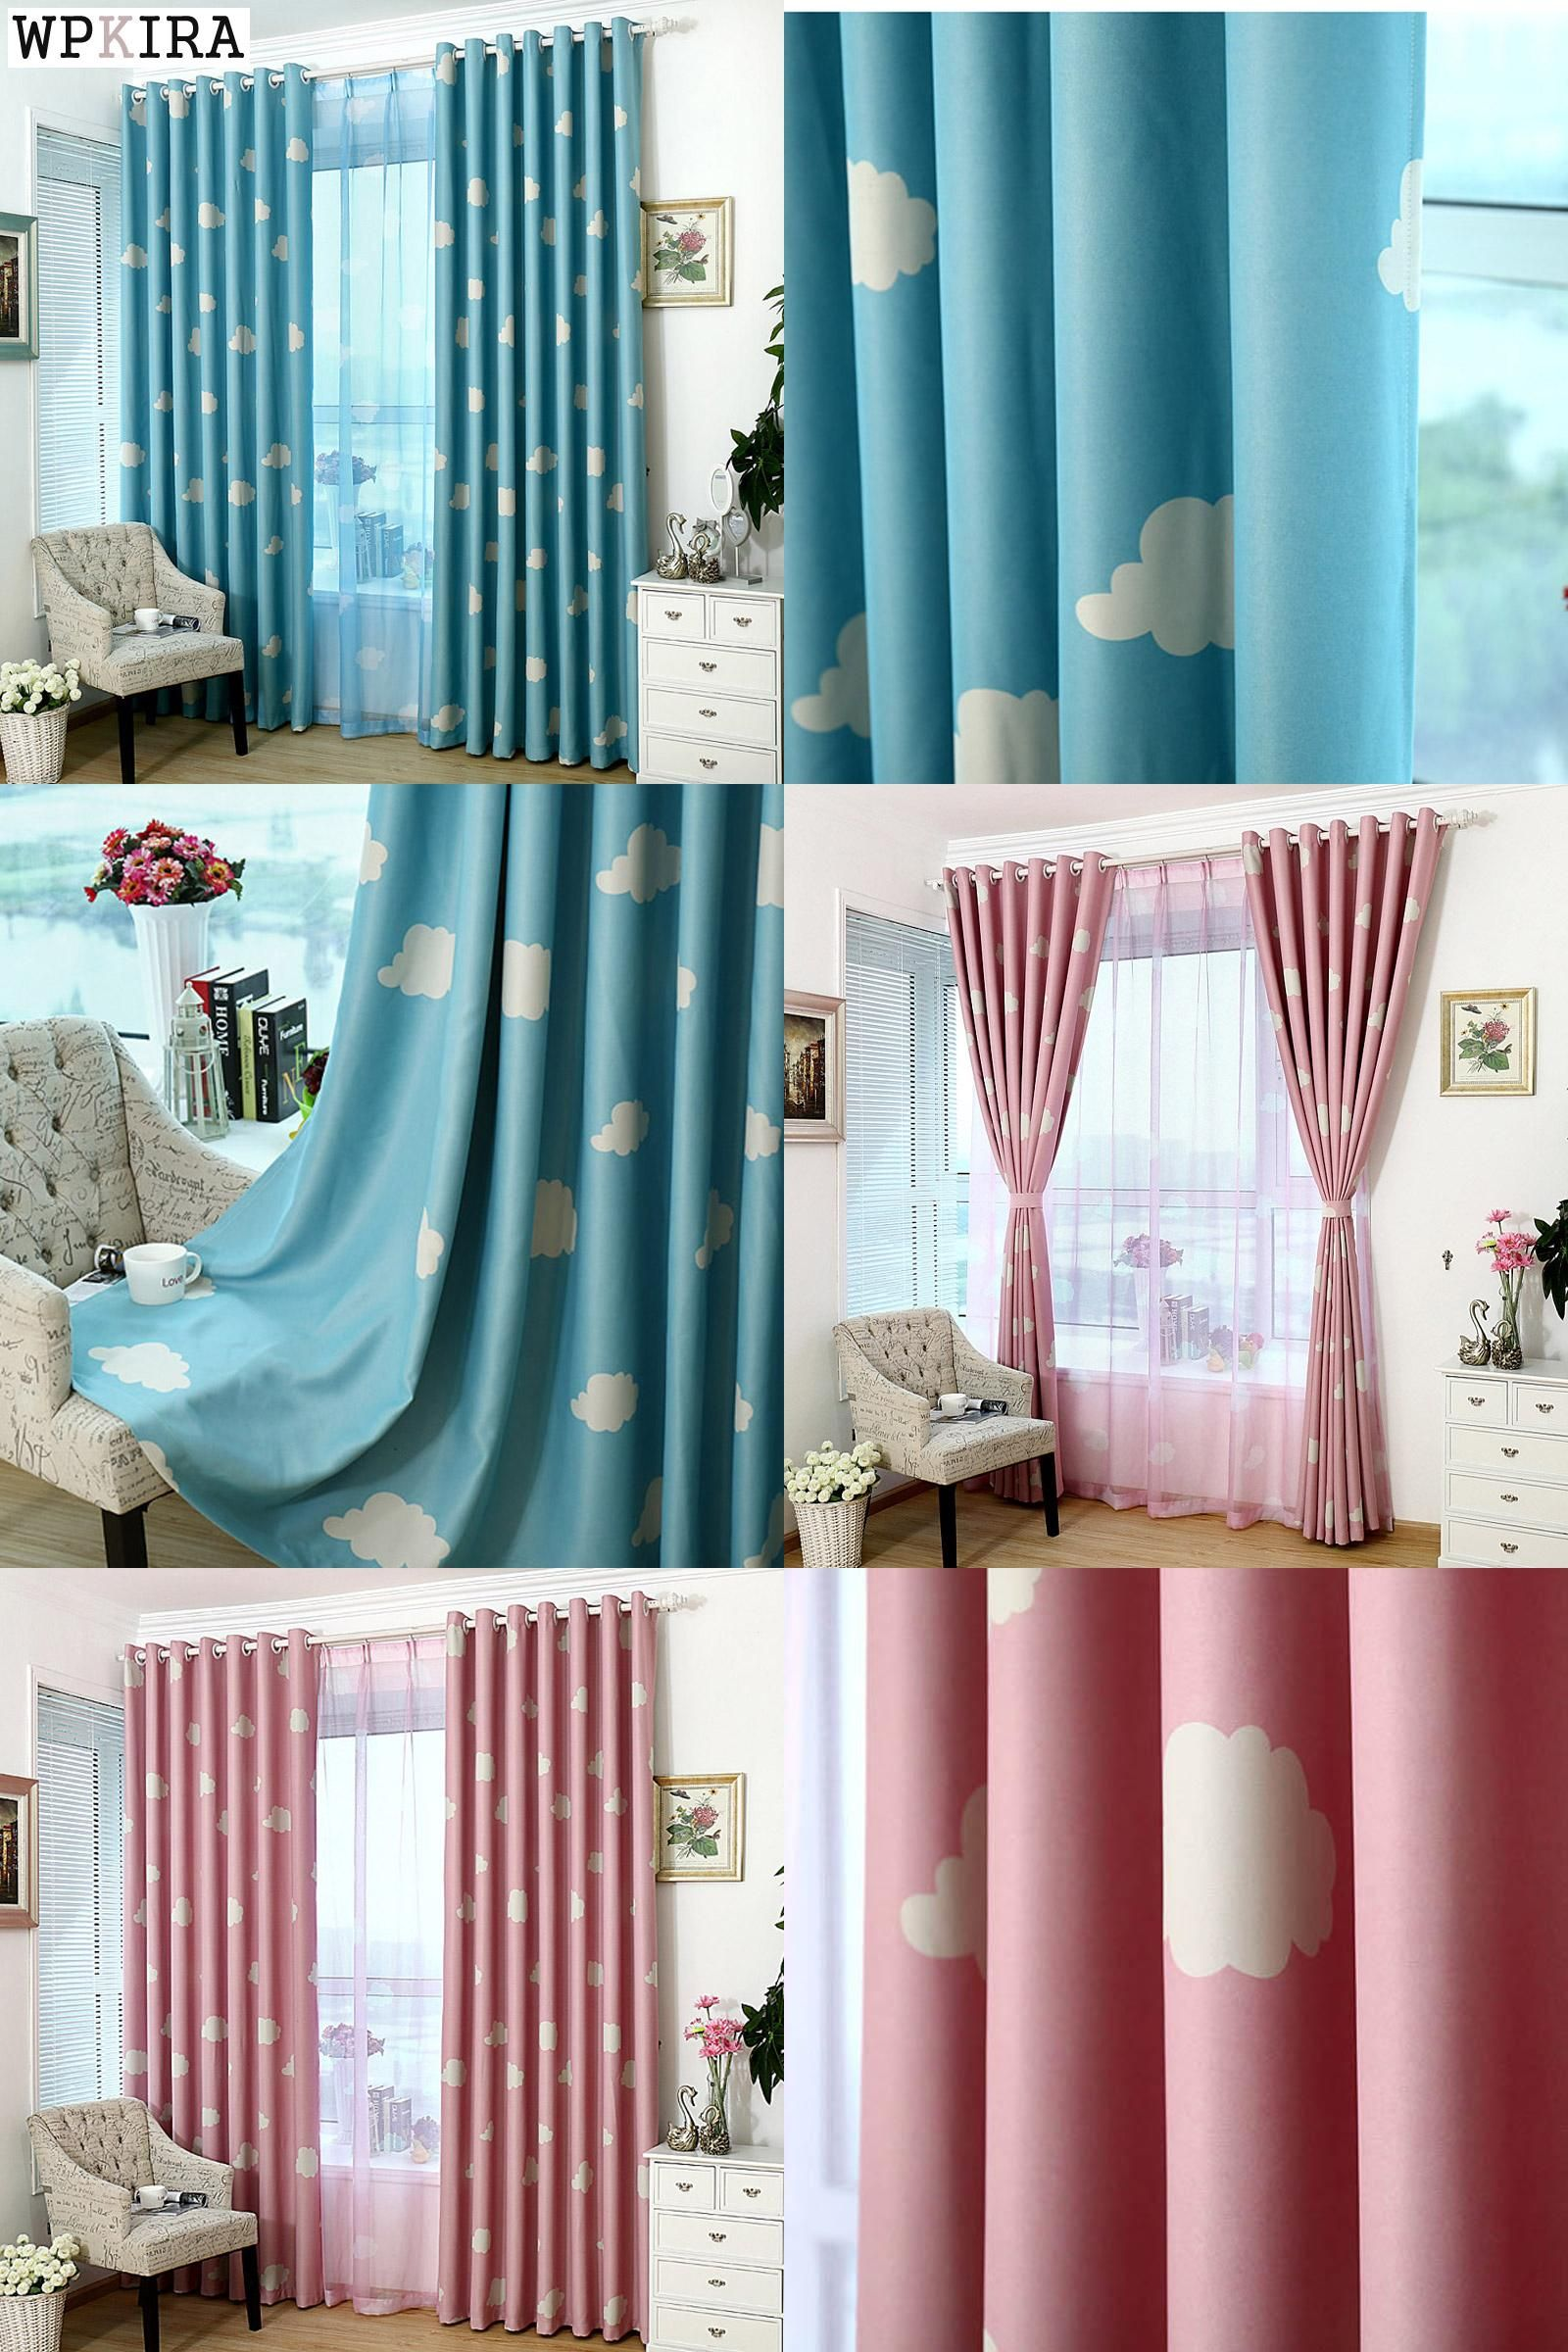 Visit to Buy] Blue/Pink Curtains Grommet Curtains Window Kitchen ...